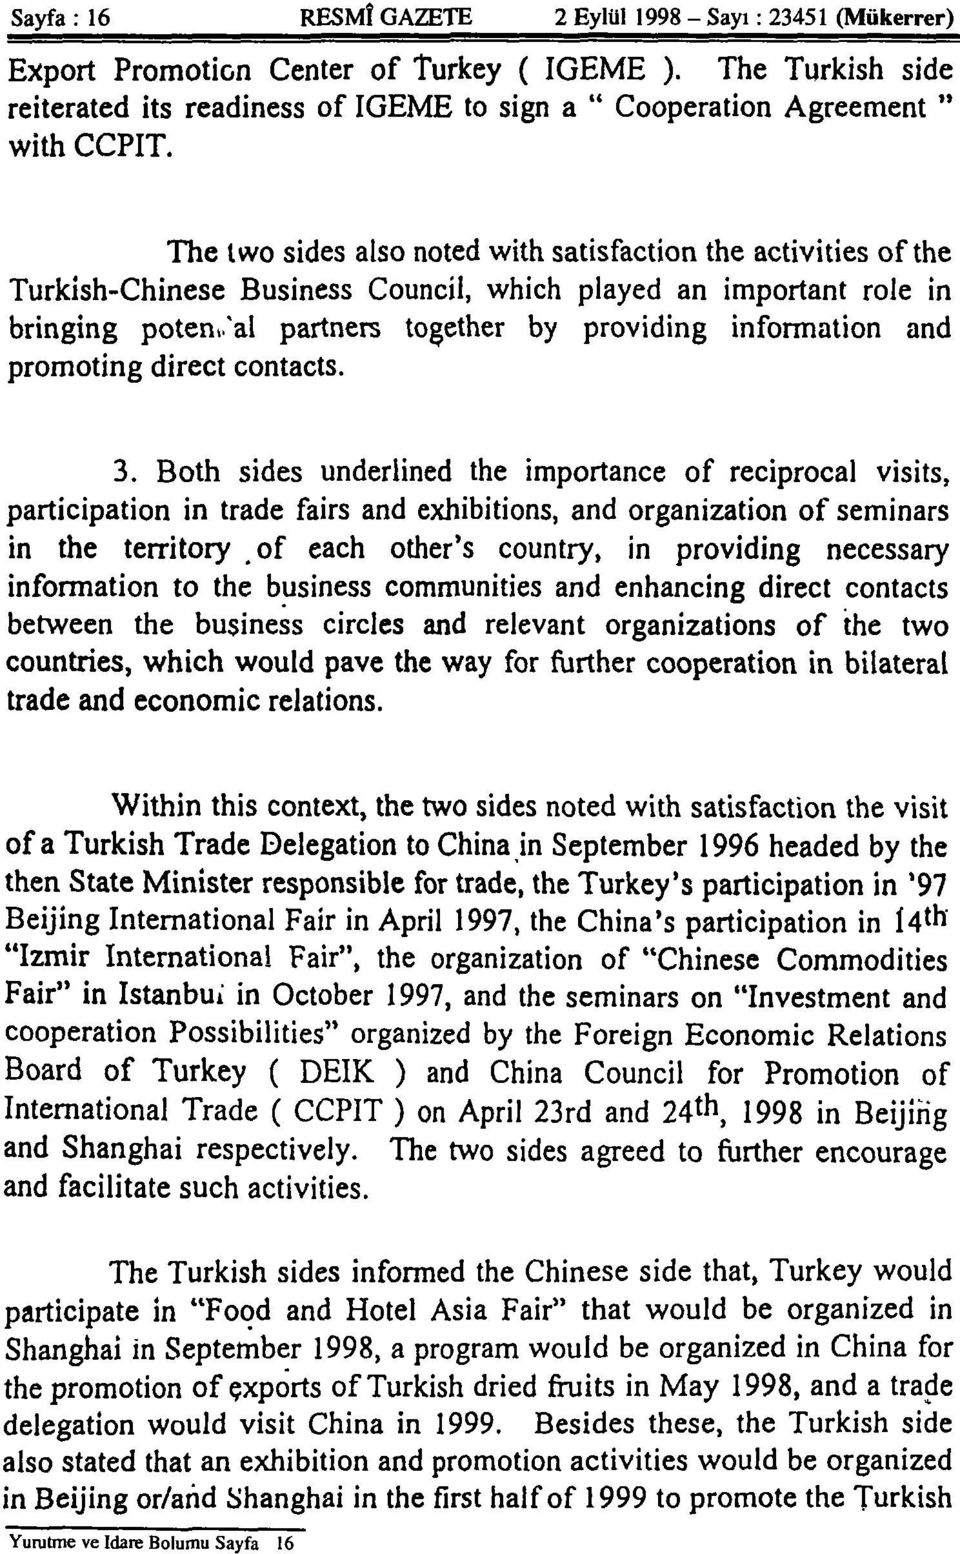 The two sides also noted with satisfaction the activities of the Turkish-Chinese Business Council, which played an important role in bringing potential partners together by providing information and